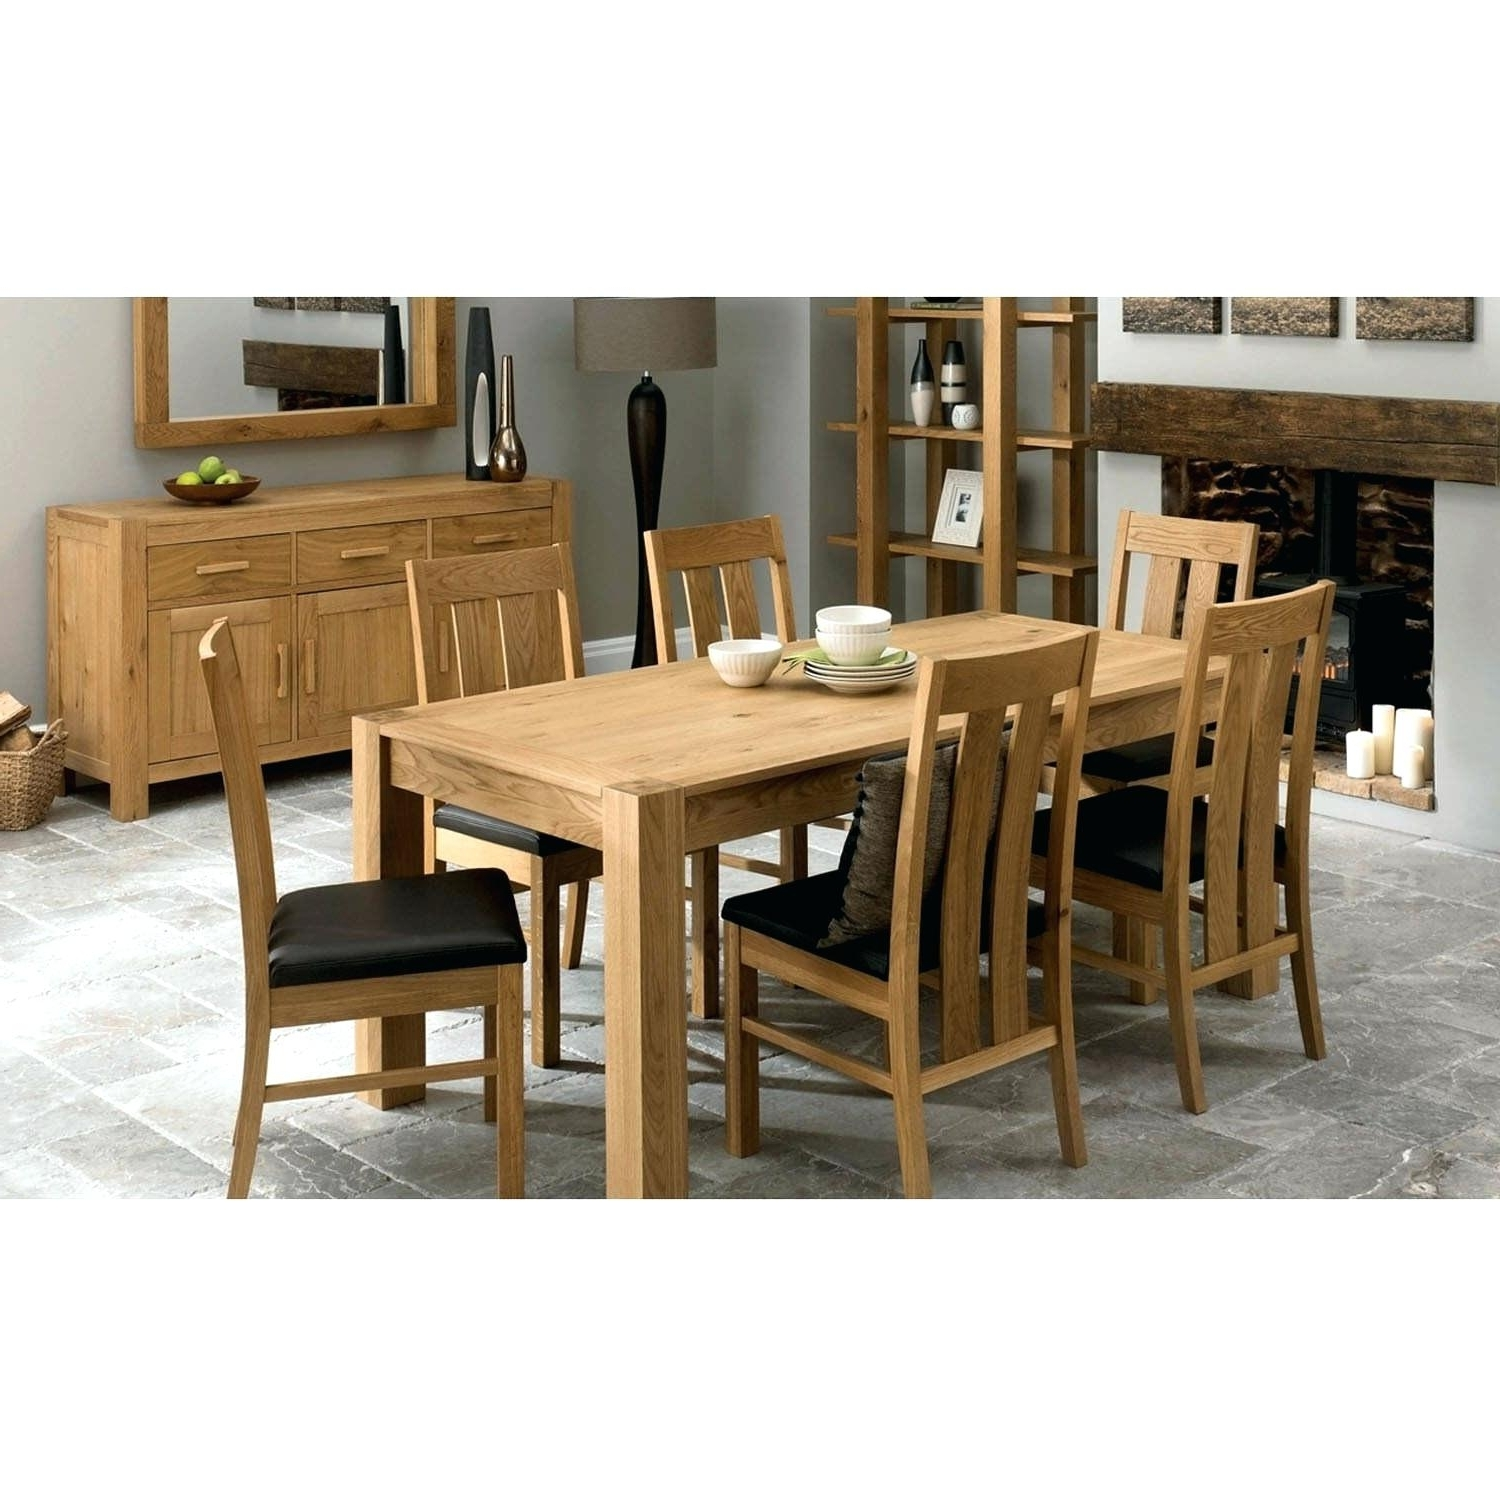 Dining Tables: Lyon Dining Table. Furniture Village Lyon Dining Pertaining To Most Recently Released Lyon Dining Tables (Gallery 6 of 25)